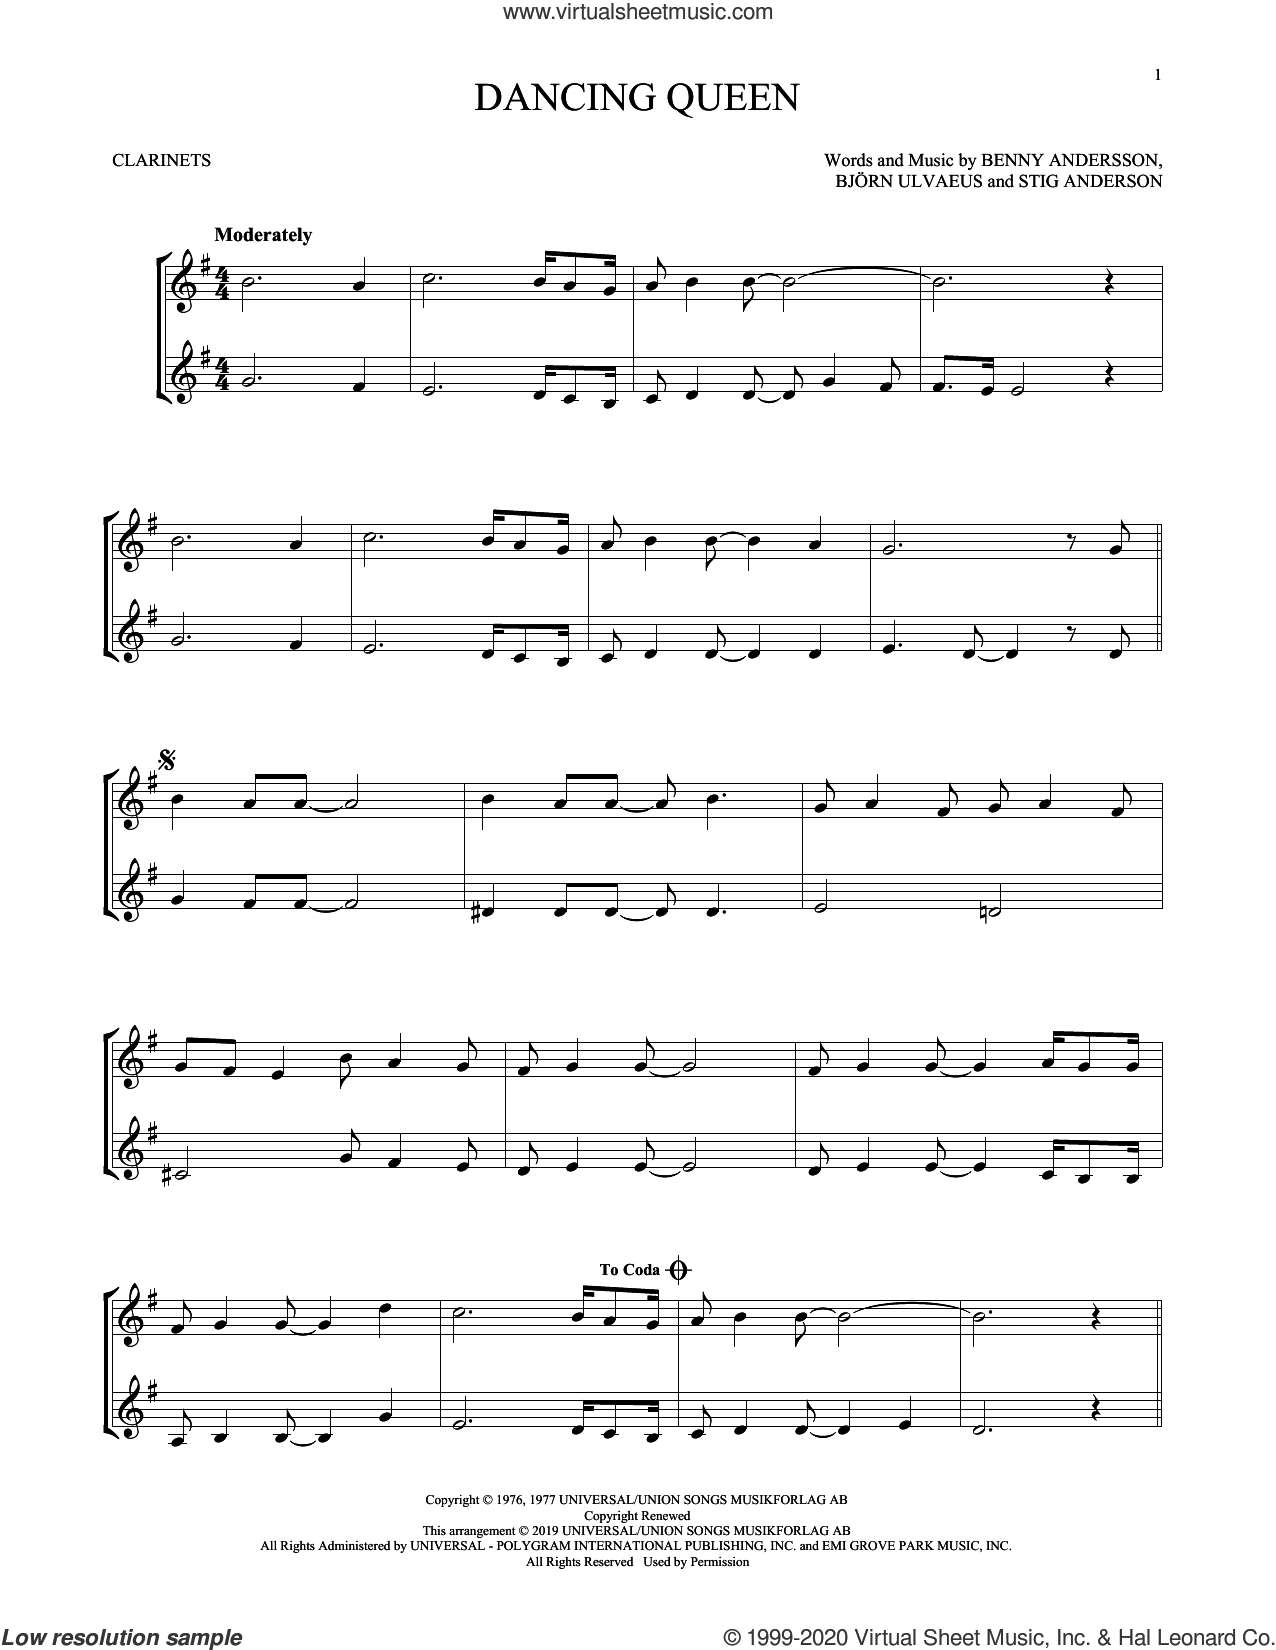 Dancing Queen sheet music for two clarinets (duets) by ABBA, Benny Andersson, Bjorn Ulvaeus and Stig Anderson, intermediate skill level